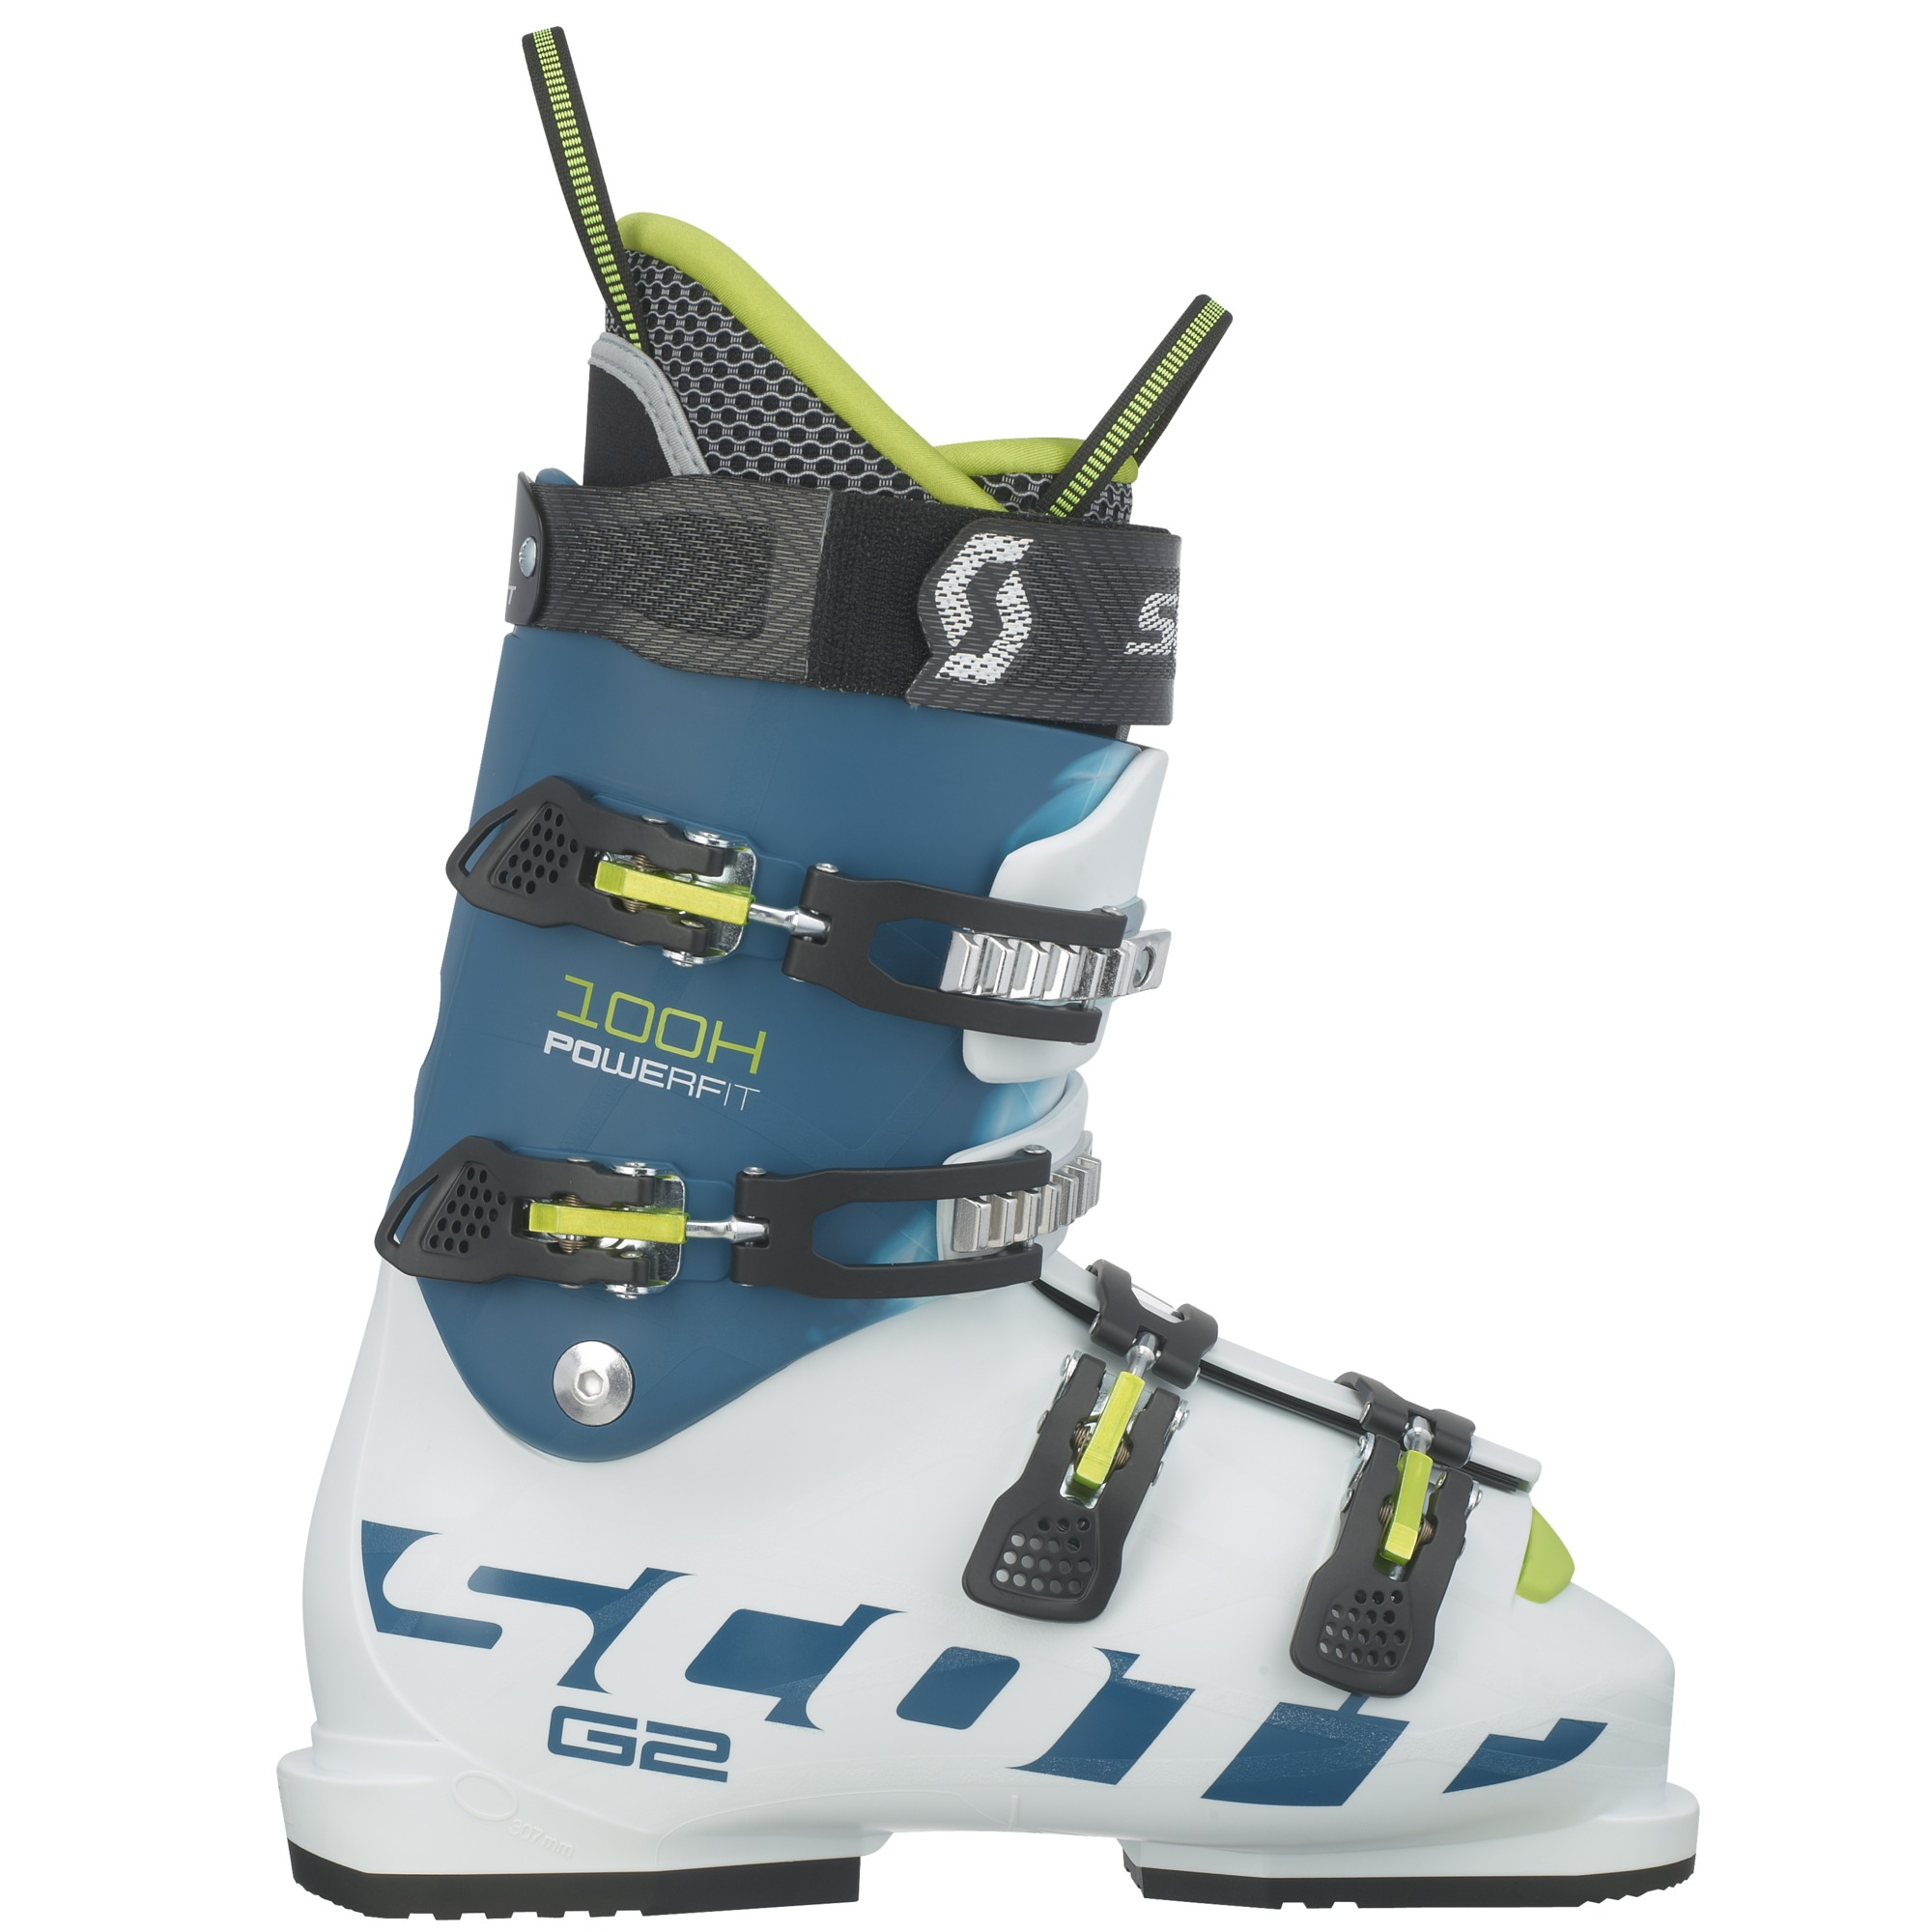 SCOTT G2 100 Powerfit H Ski Boot